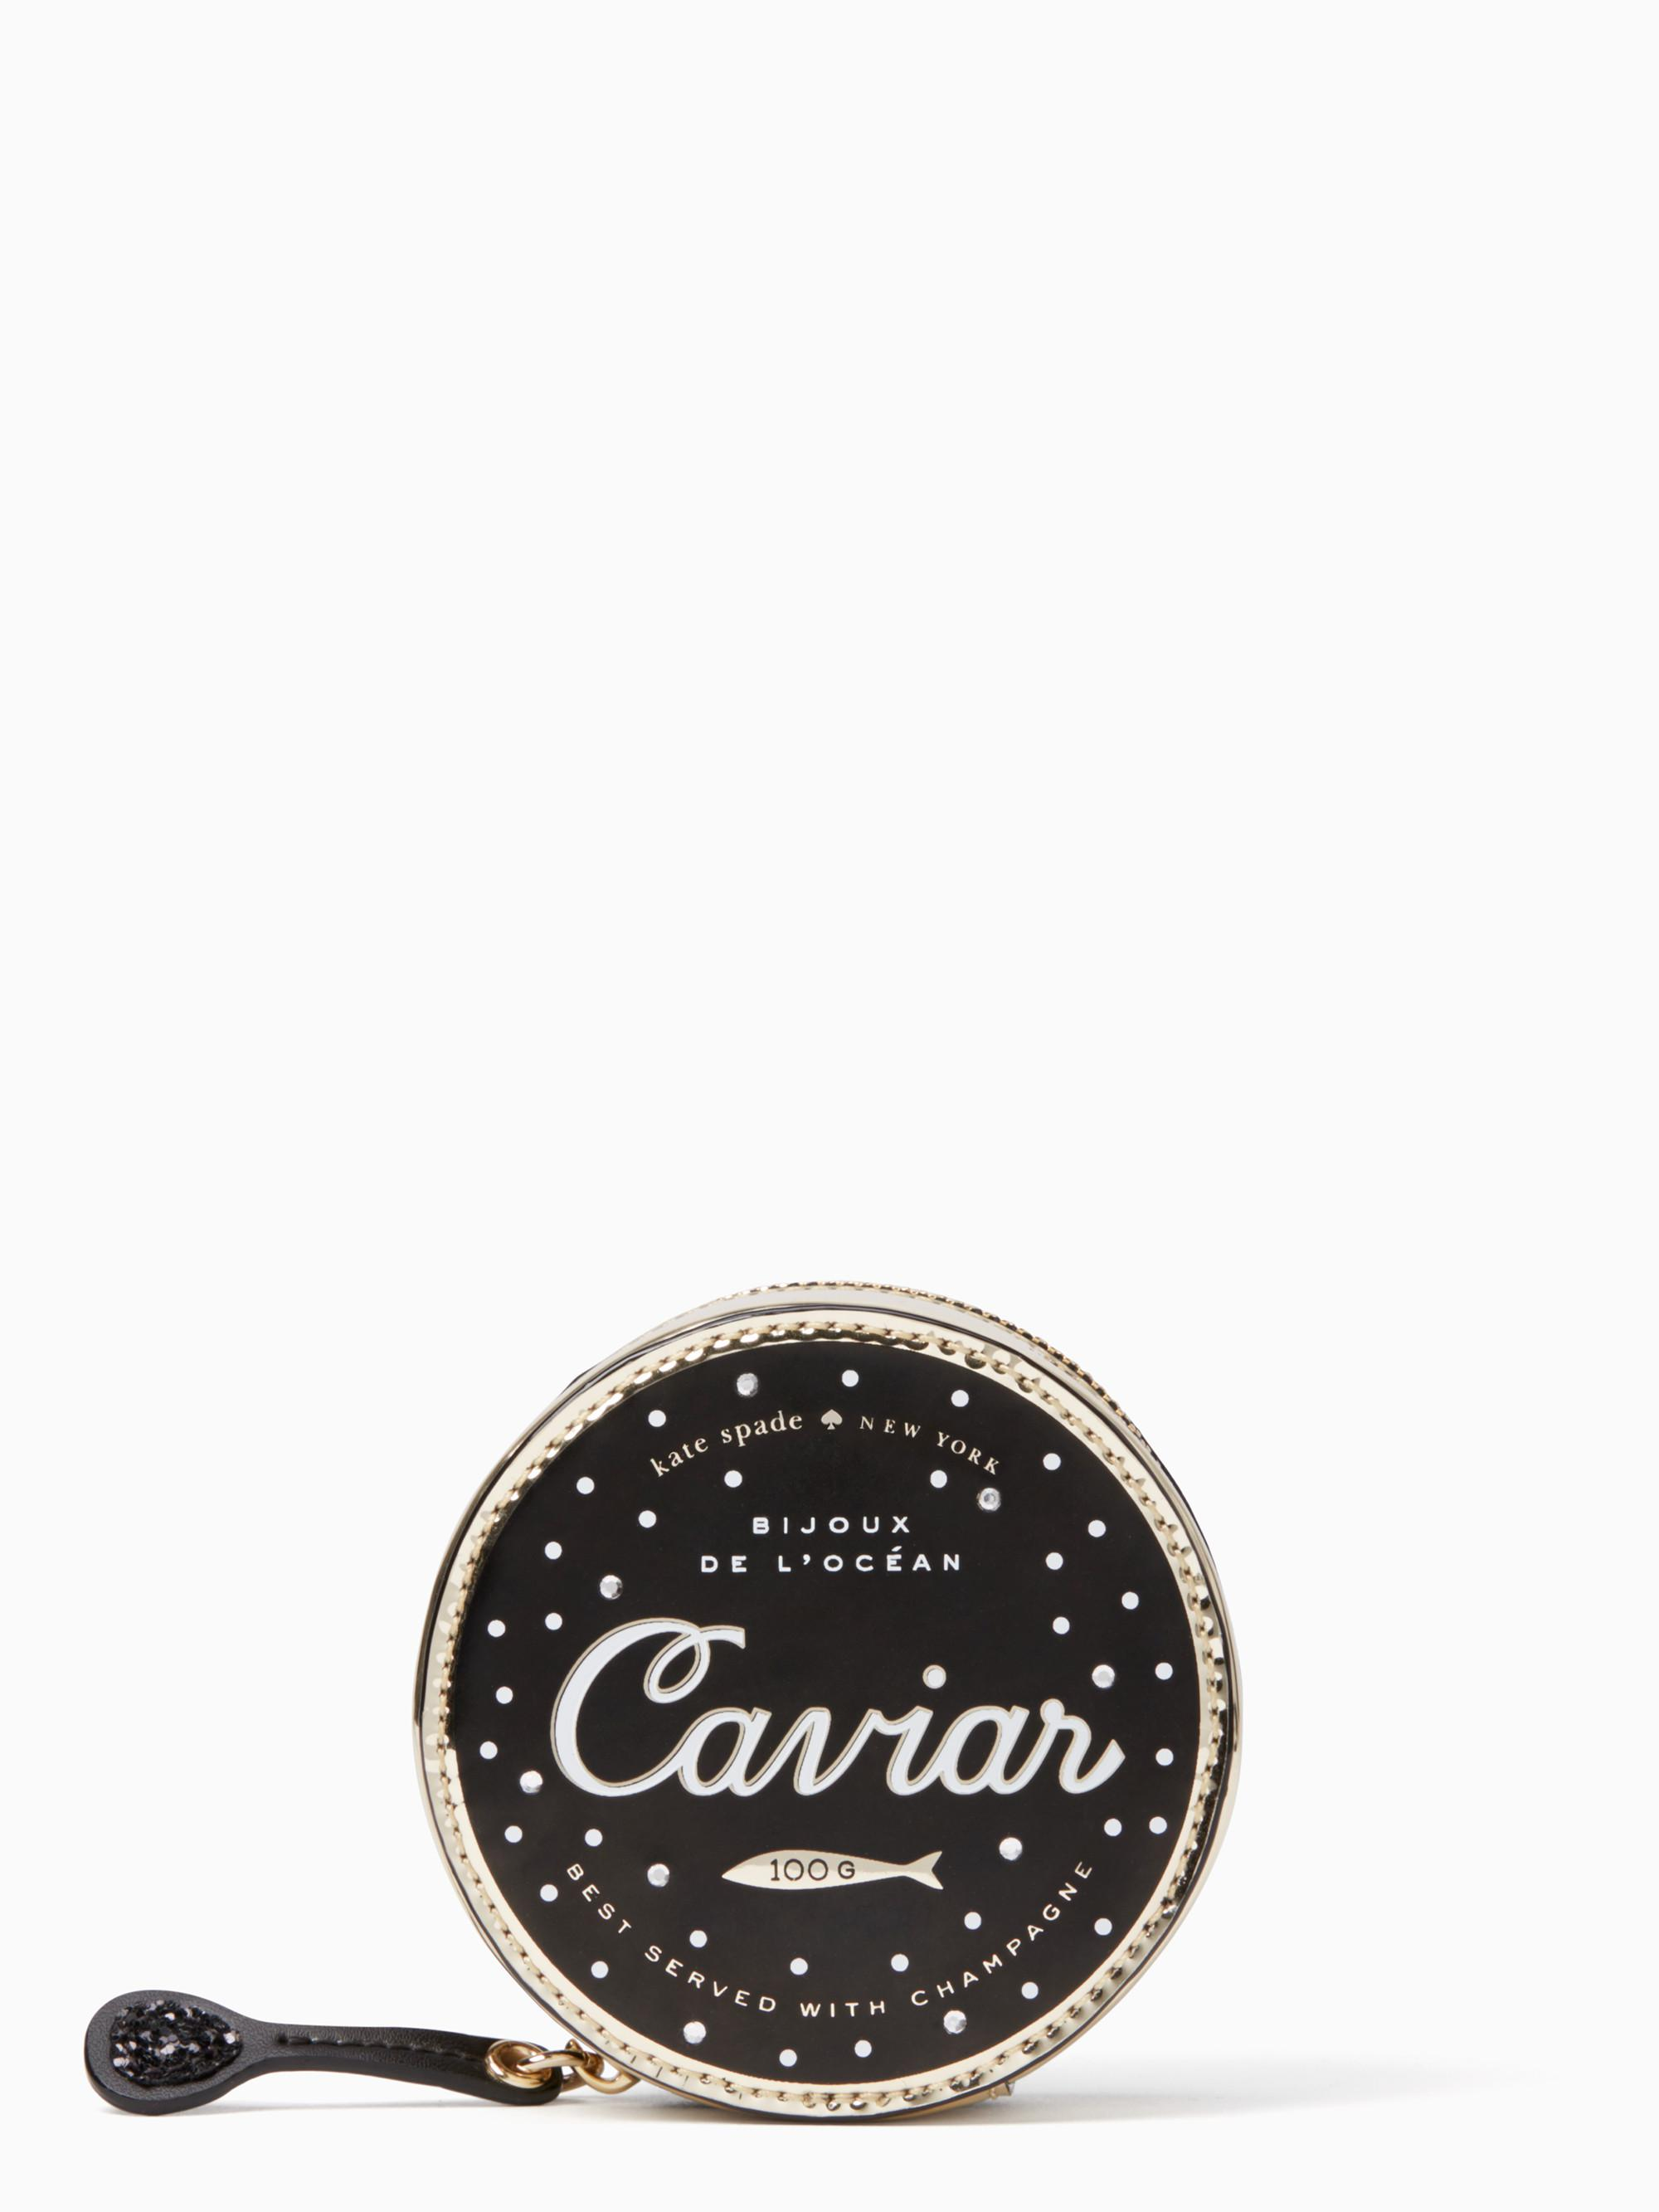 aeddd32ccadc Kate Spade Finer Things Caviar Coin Purse in Black - Lyst